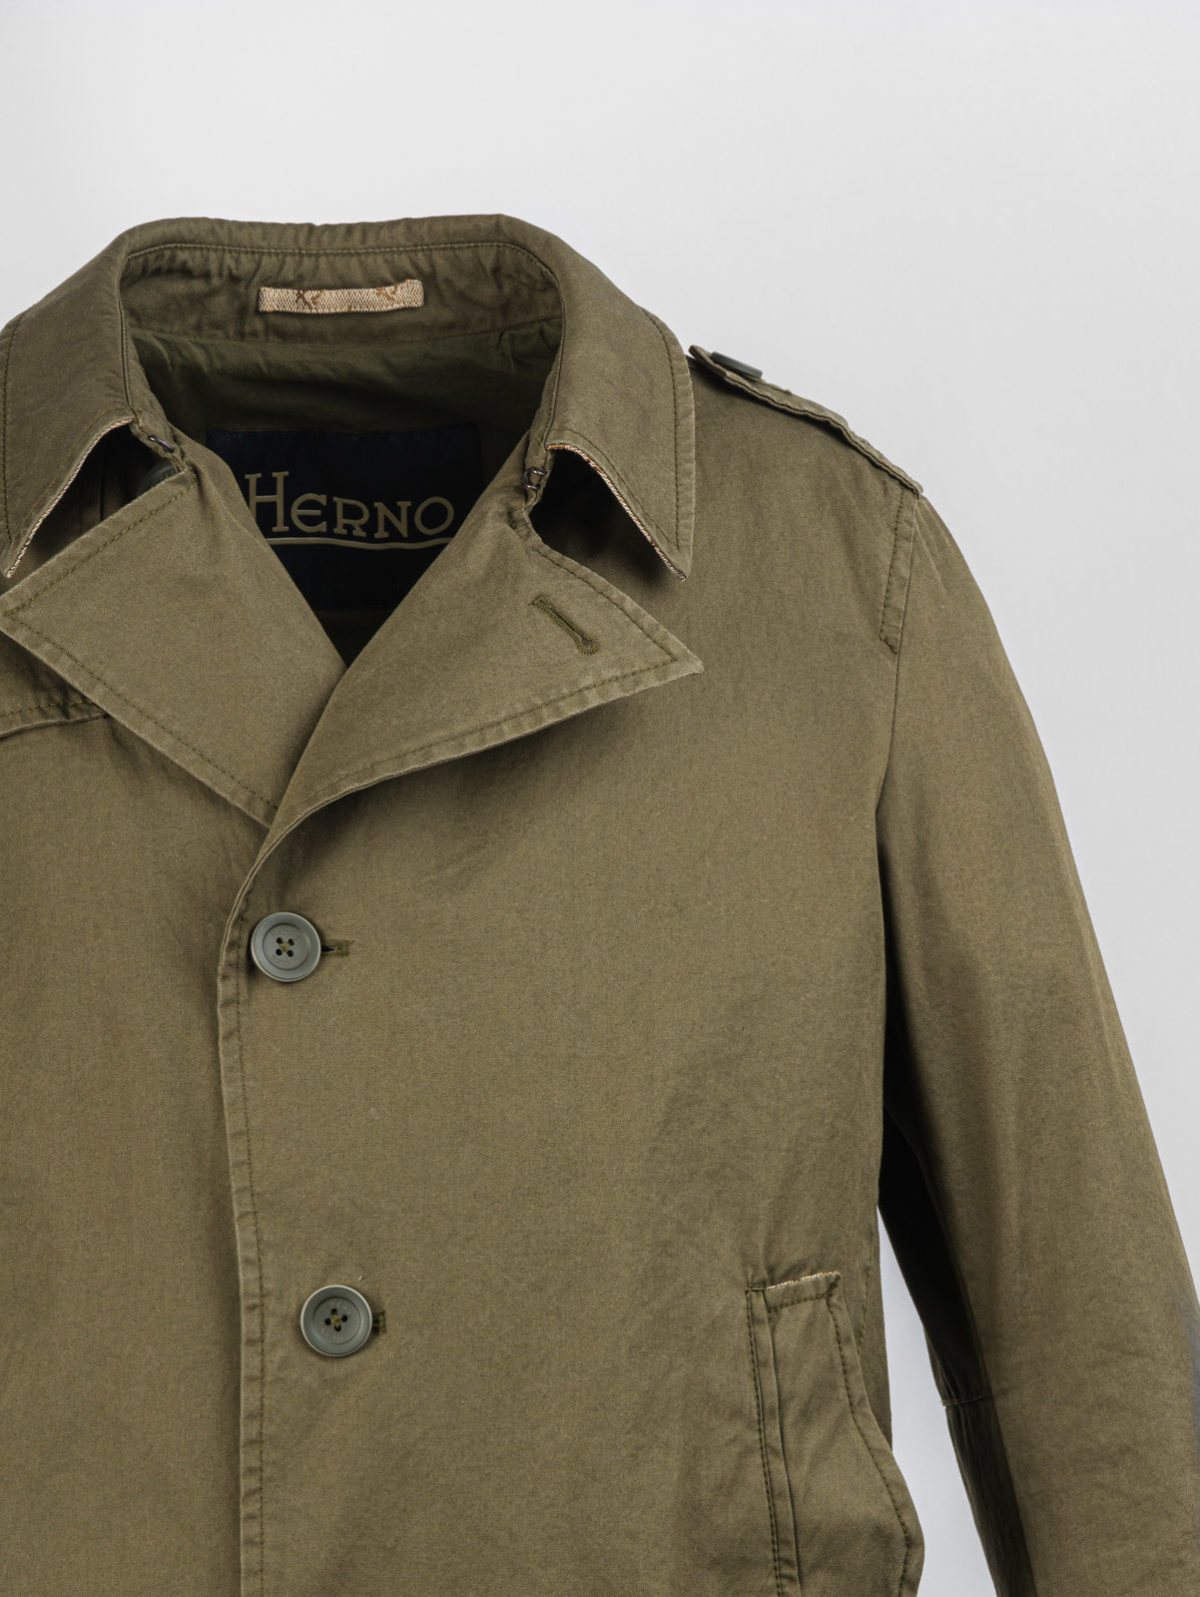 HERNO FLORENCE COTTON MILITARY TRENCH